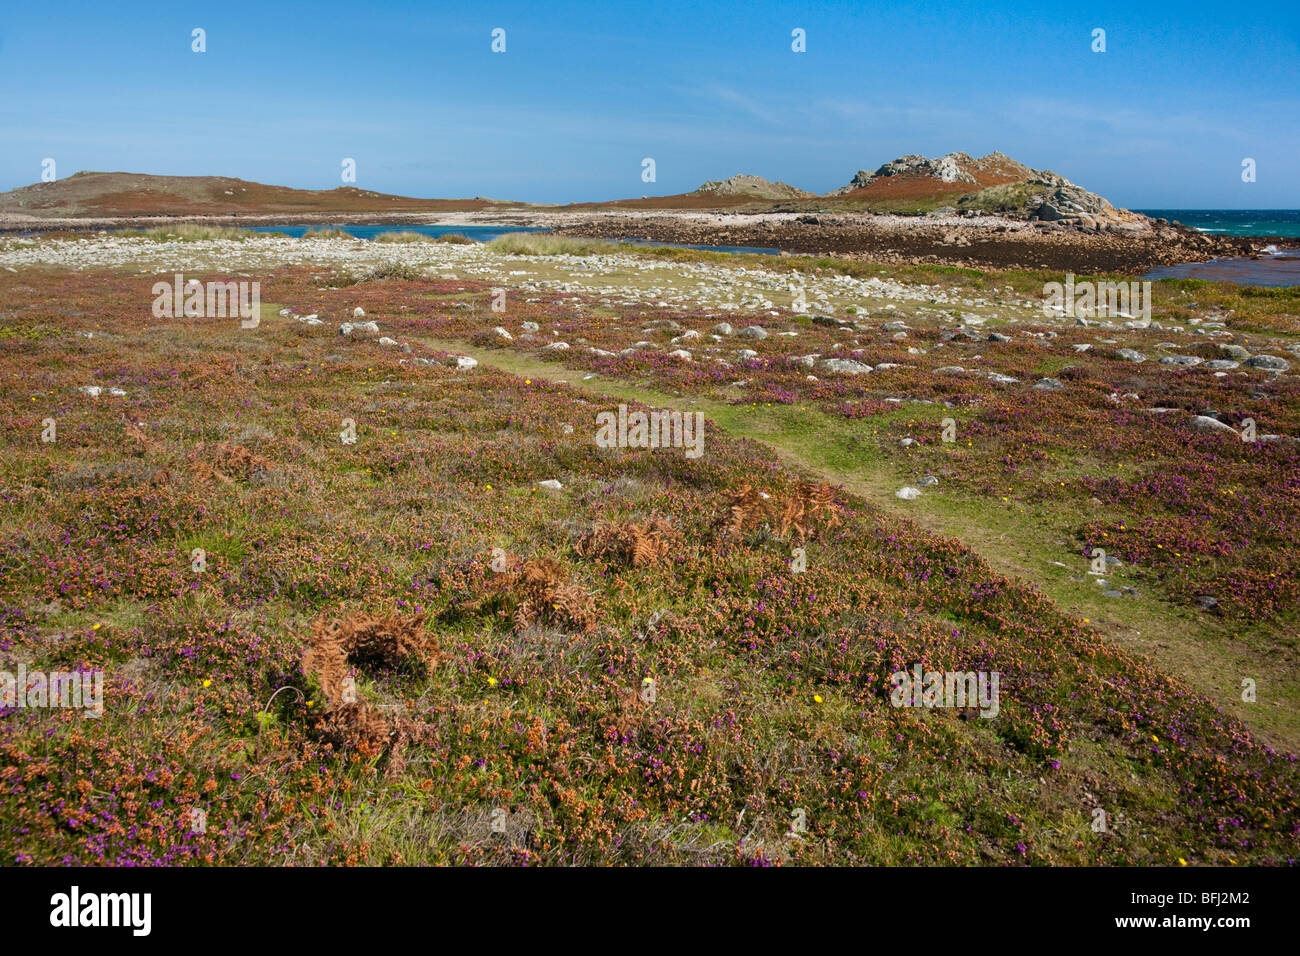 White Island viewed from St. Martin's, Isles of Scilly, looking over the mazes - Stock Image